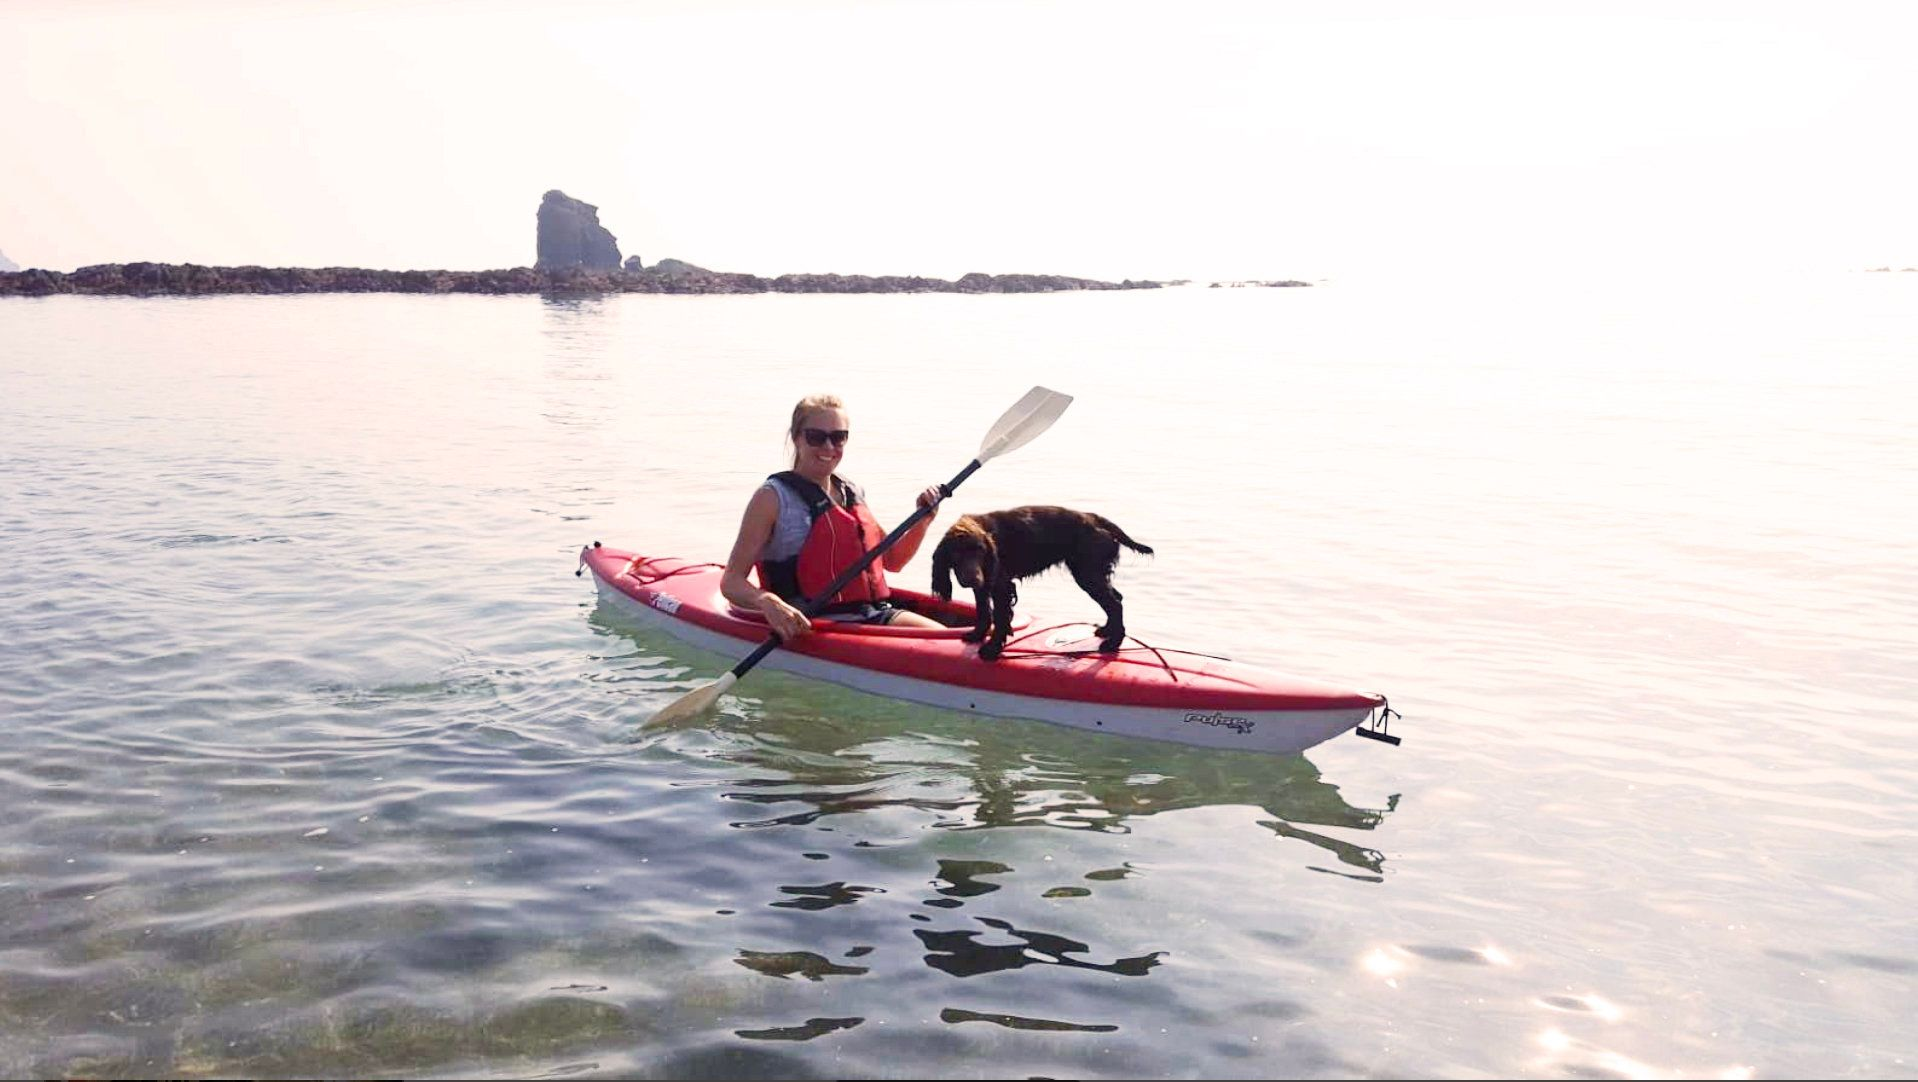 What Works For Me: 'Kayaking Helps Me Escape The Pressure To